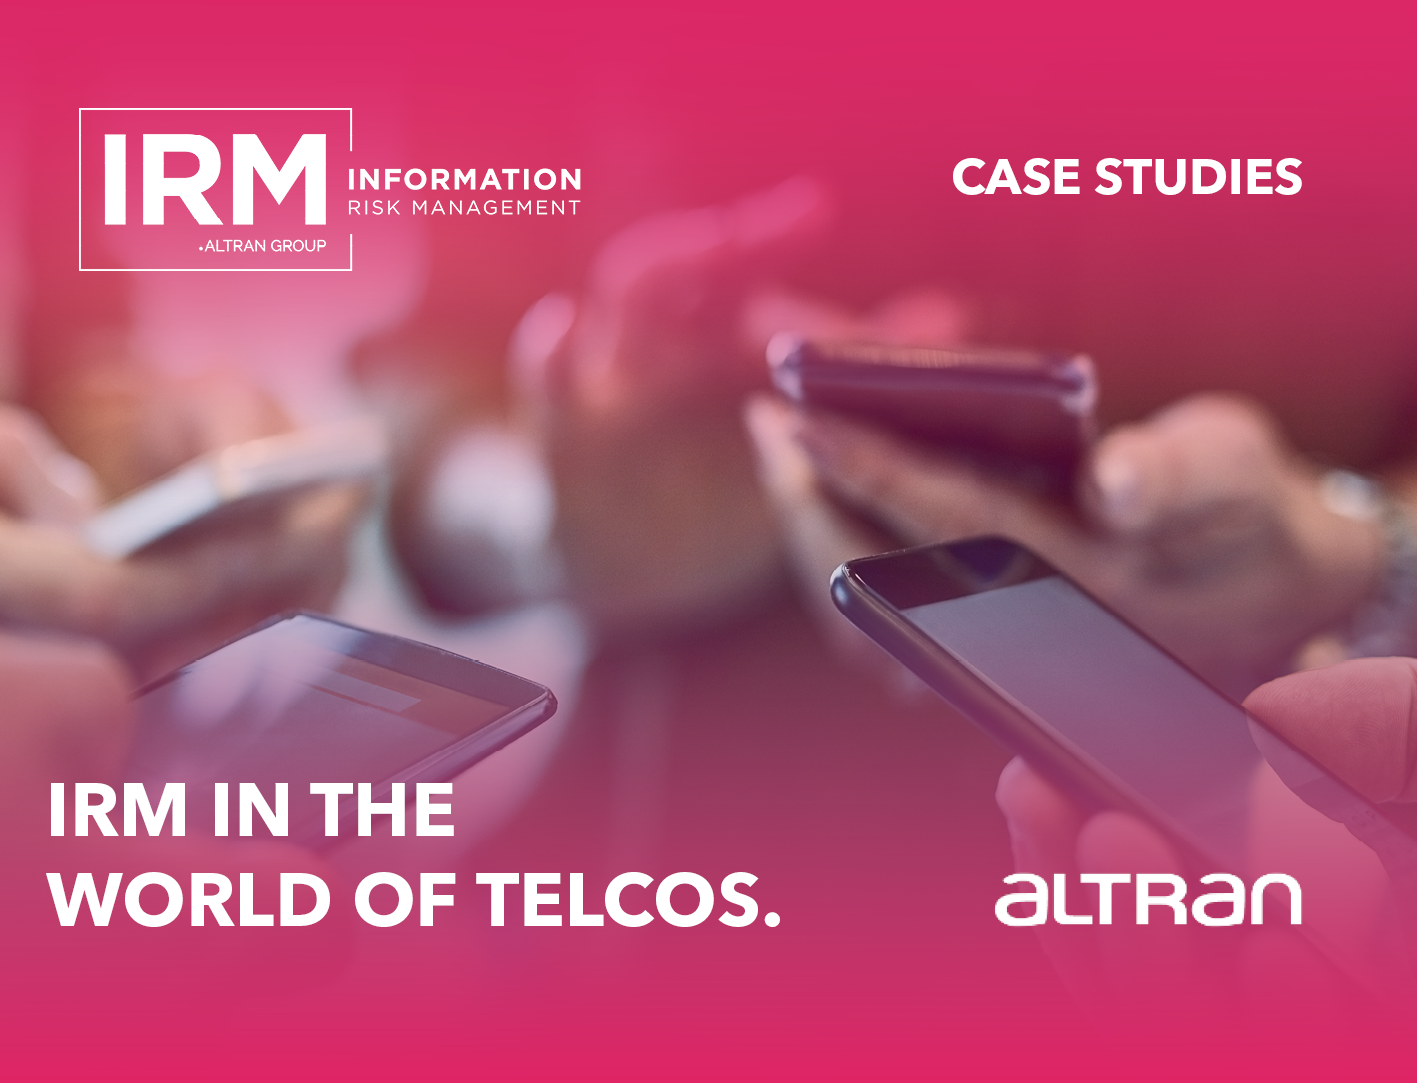 IRM in the world of telcos case studies